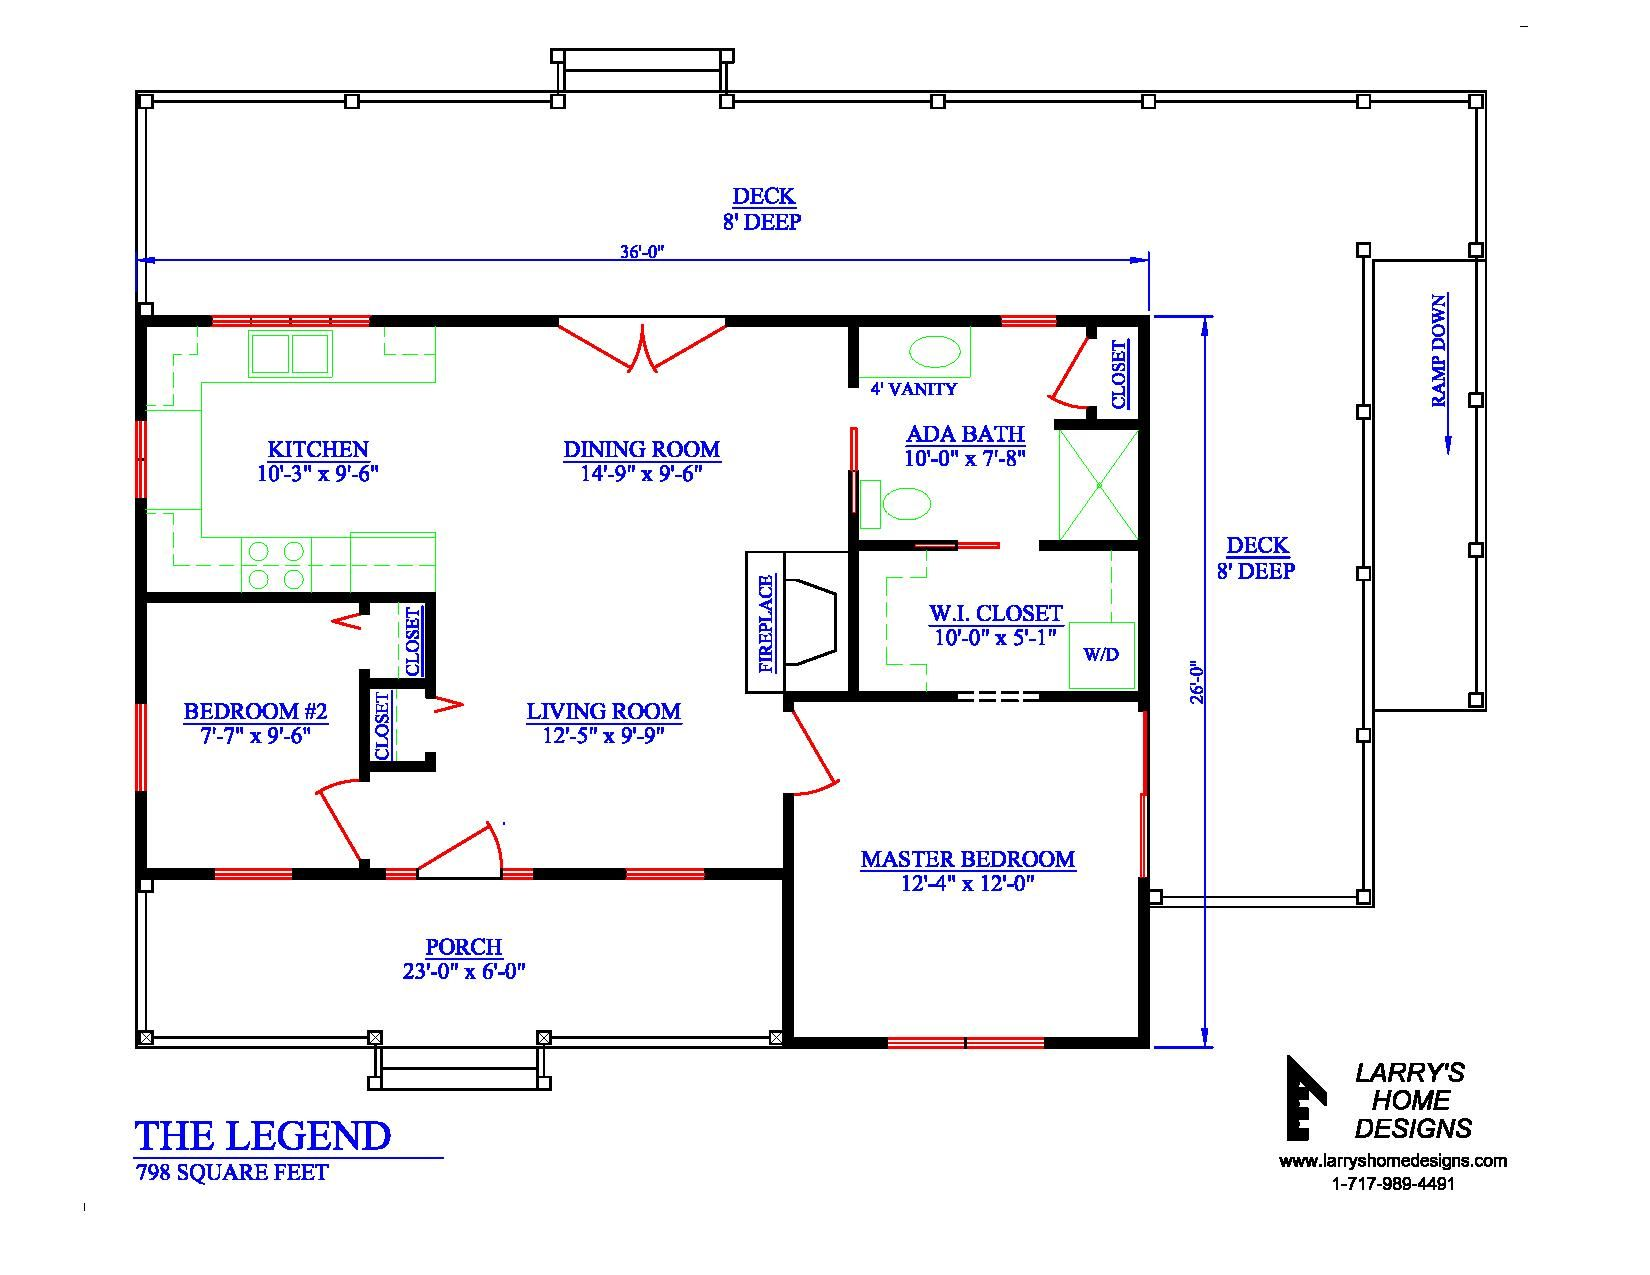 798 Sq Ft Wheelchair Accessible Small House Plans In 2020 Small House Plans House Floor Plans Home Addition Plans